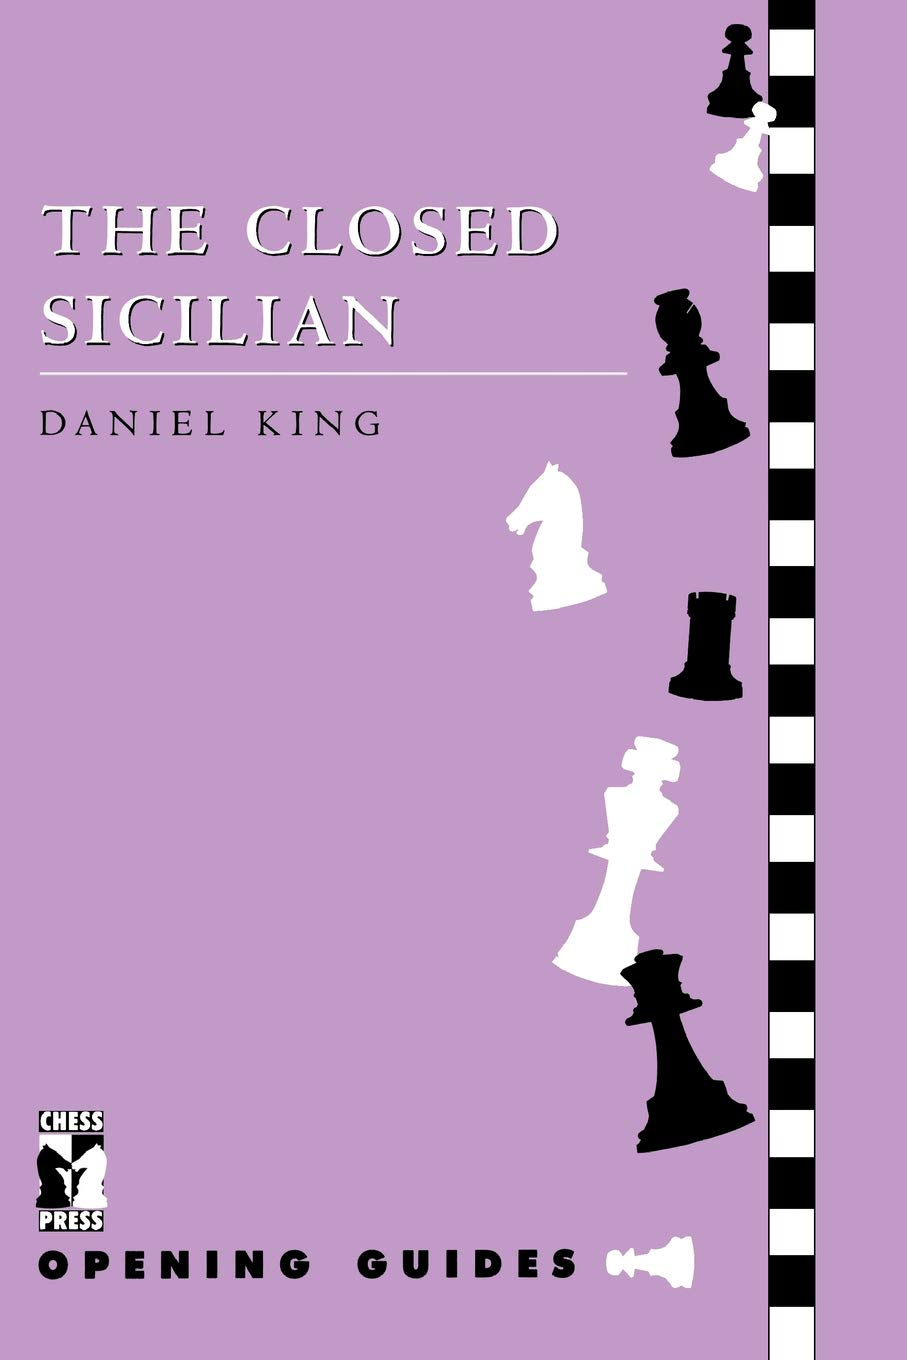 The Closed Sicilian - Opening Guides - Chess Press